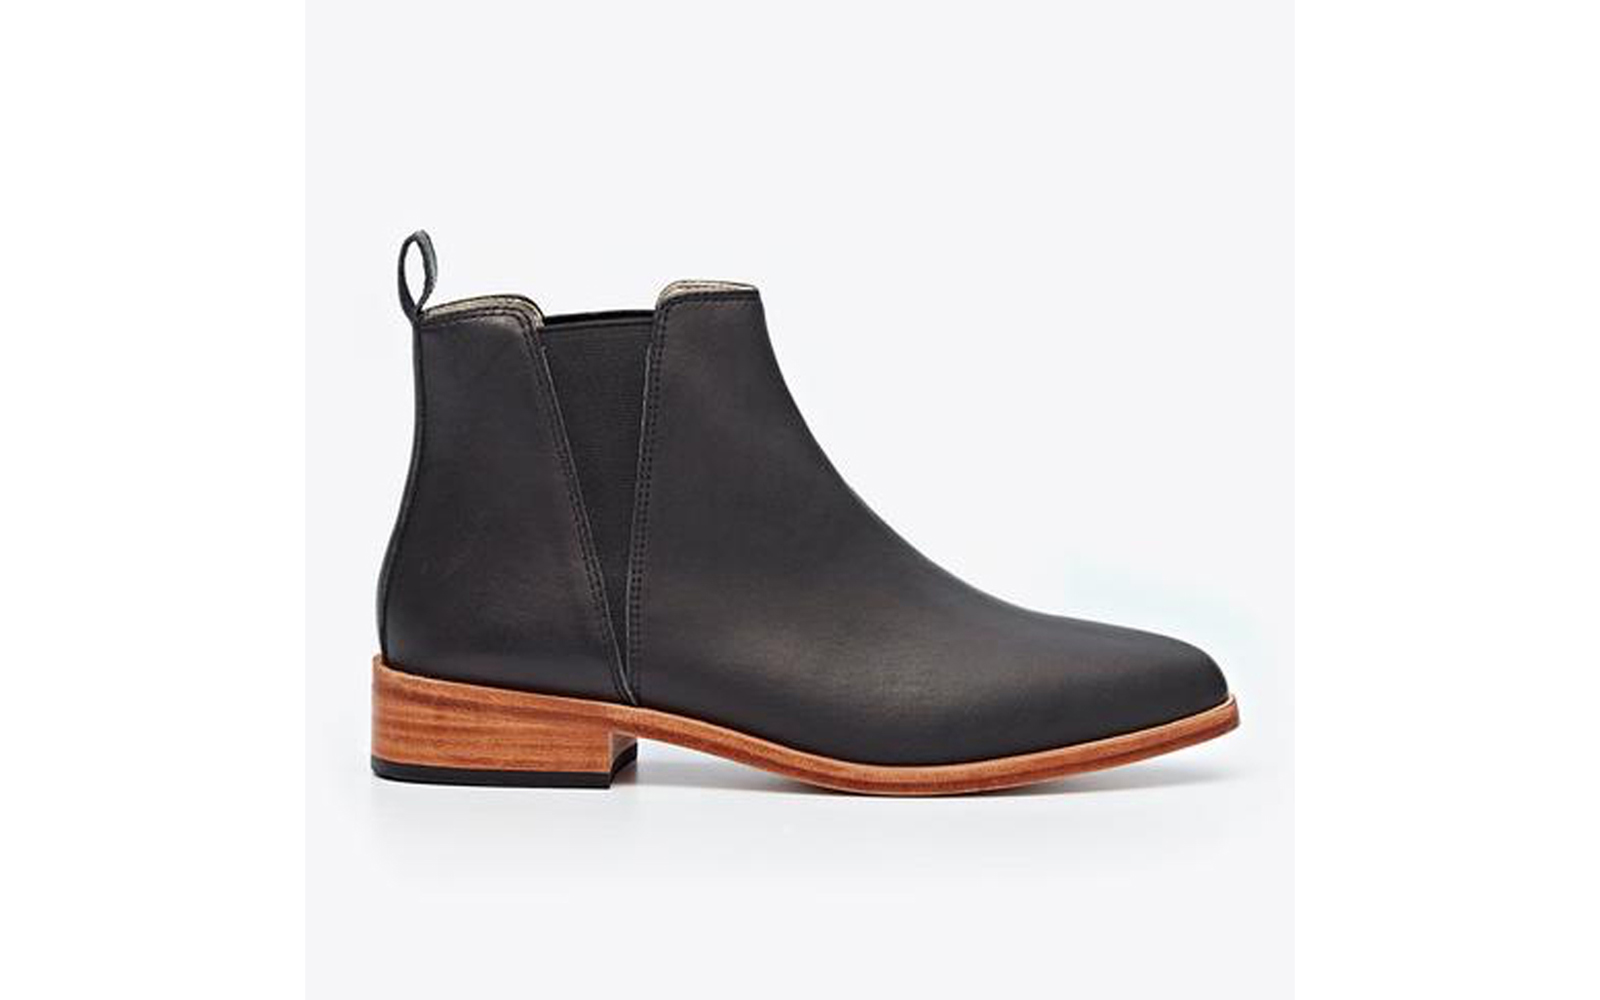 Best Chelsea Boots: Nisolo Chelsea Boot